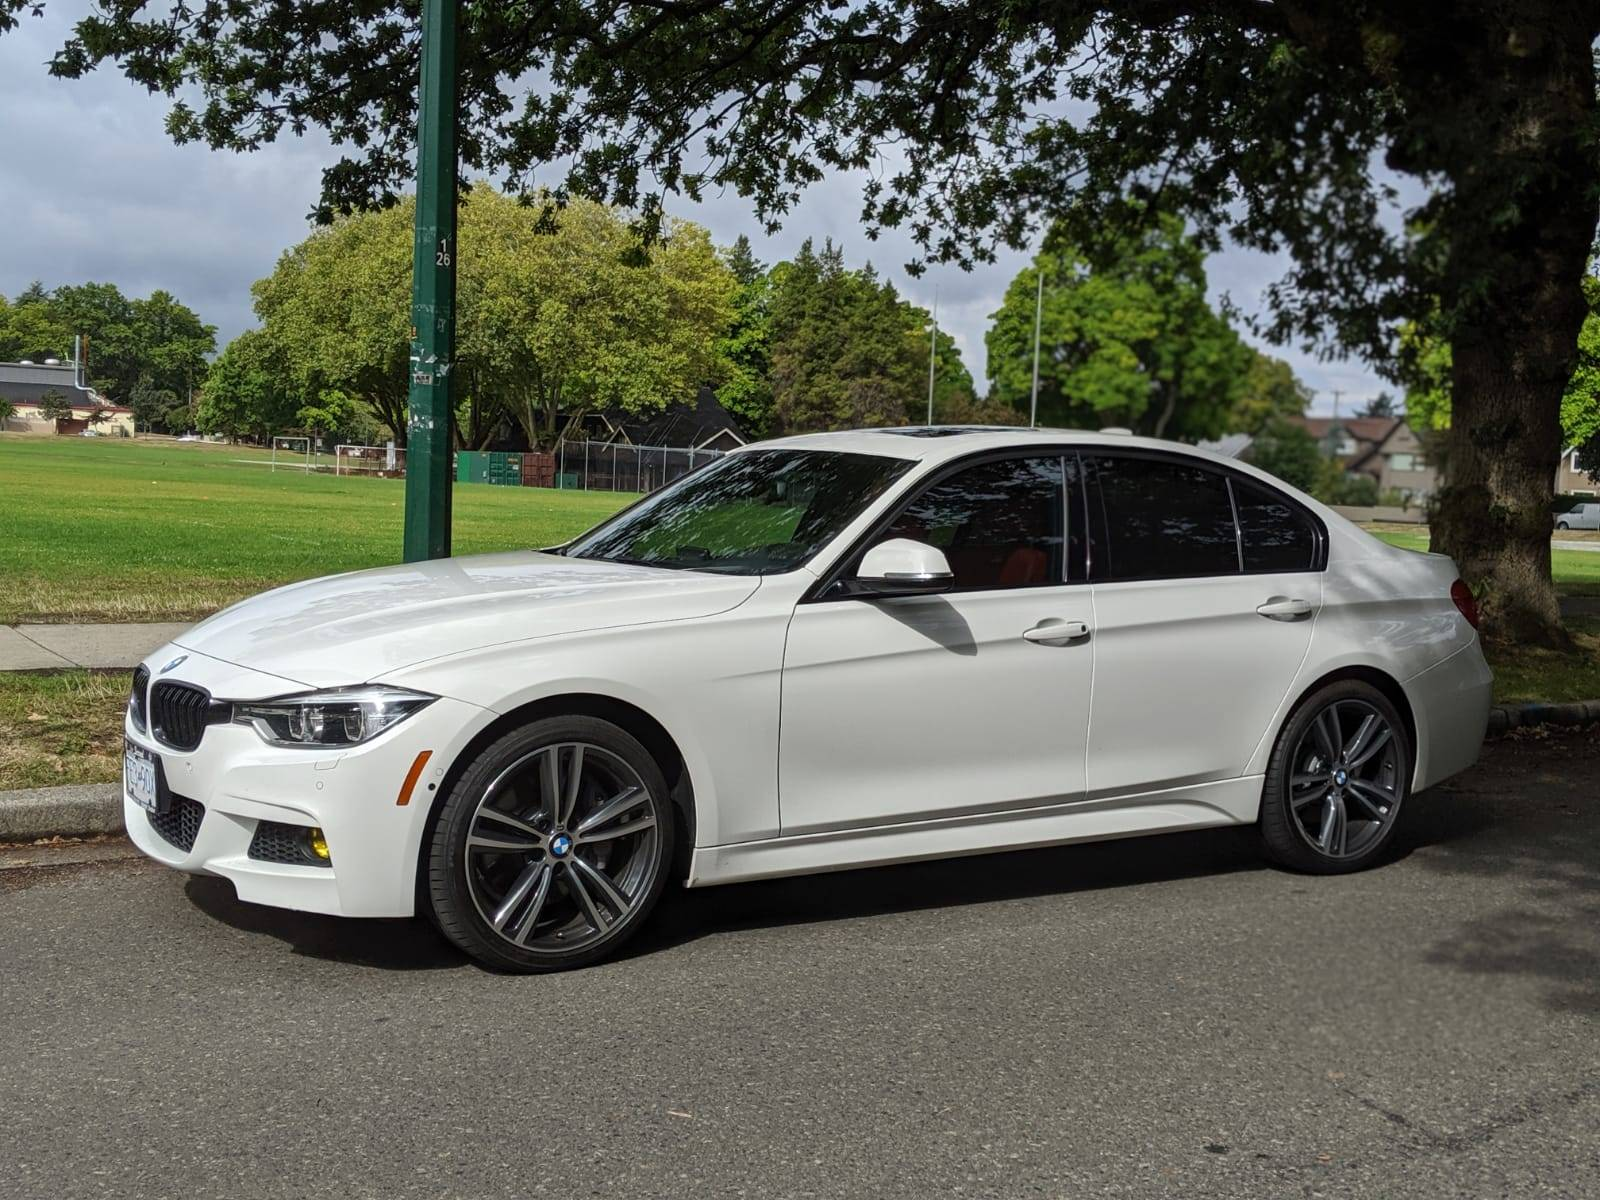 Bmw Lease Takeover In Vancouver Bc 2017 Bmw 340i Xdrive M Performance I Ii Automatic Awd Id 13869 Leasecosts Canada